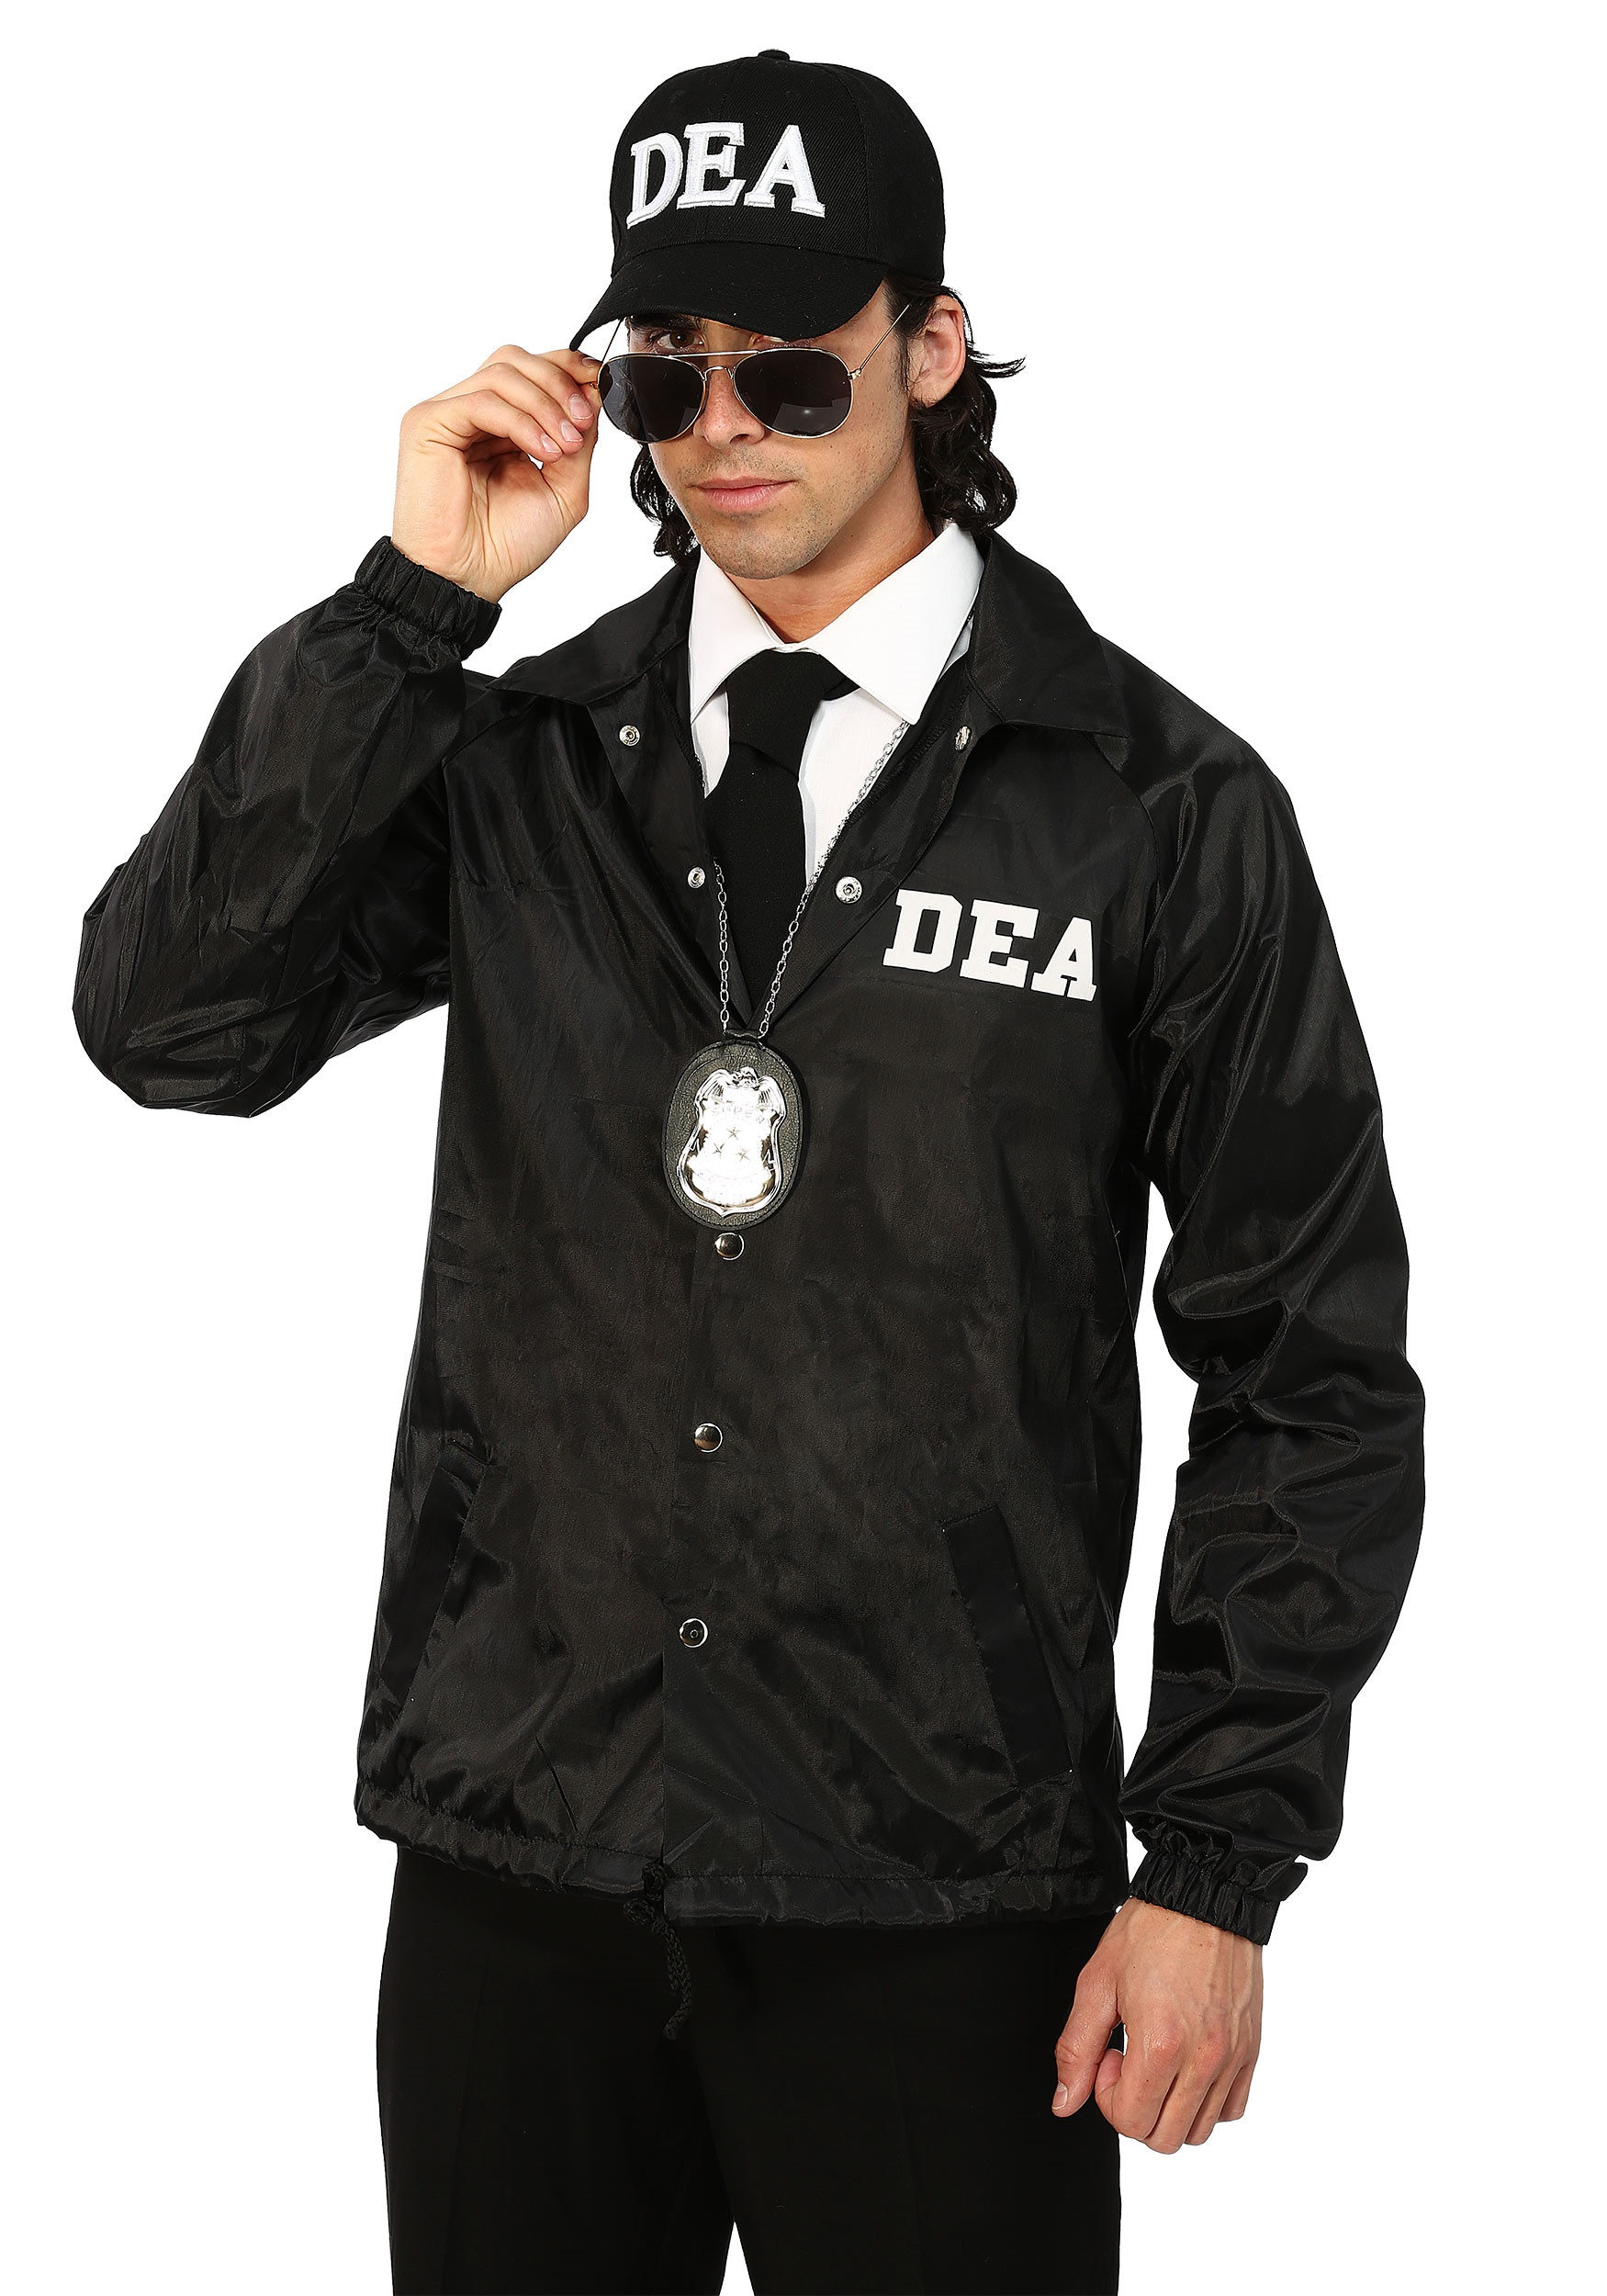 Halloween Costumes 2020 Dea DEA Agent Costume for Adults